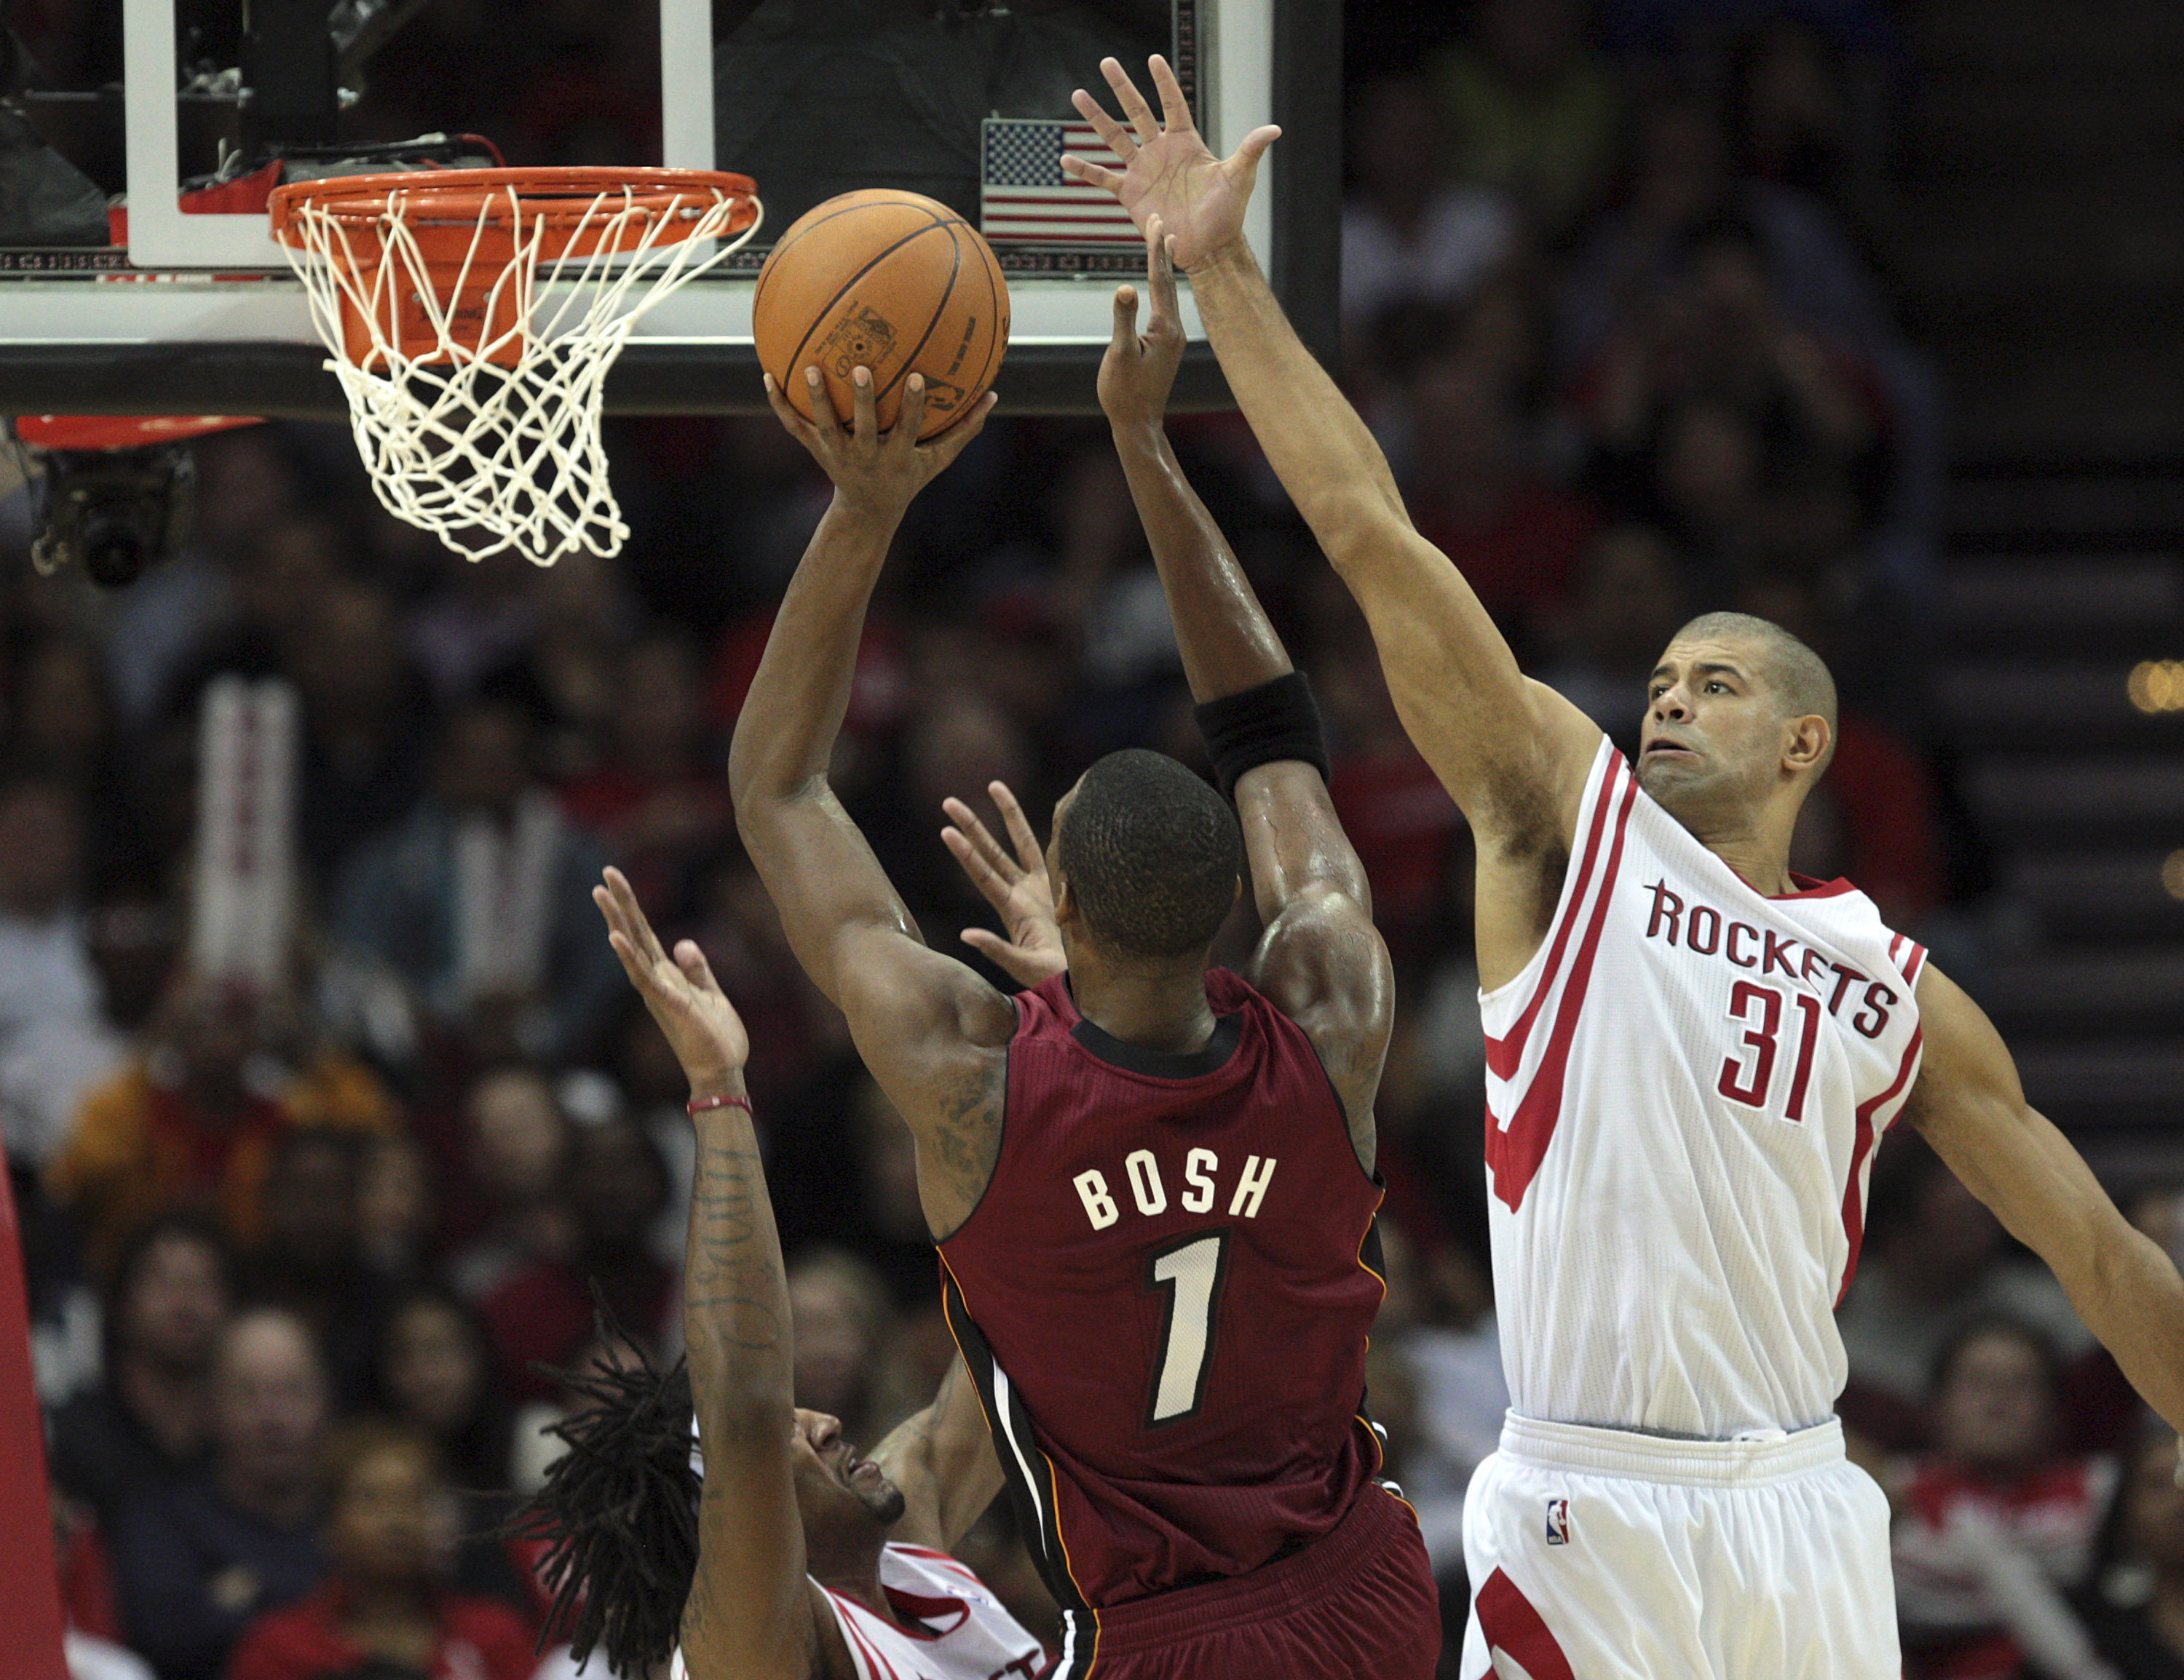 HOUSTON - DECEMBER 29: Chris Bosh #1 of the Miami Heat shoots over Shane Battier #31 of the Houston Rockets and Jordan Hill, left, in the fourth quarter at Toyota Center on December 29, 2010 in Houston, Texas. Miami won 125-119. NOTE TO USER: User express